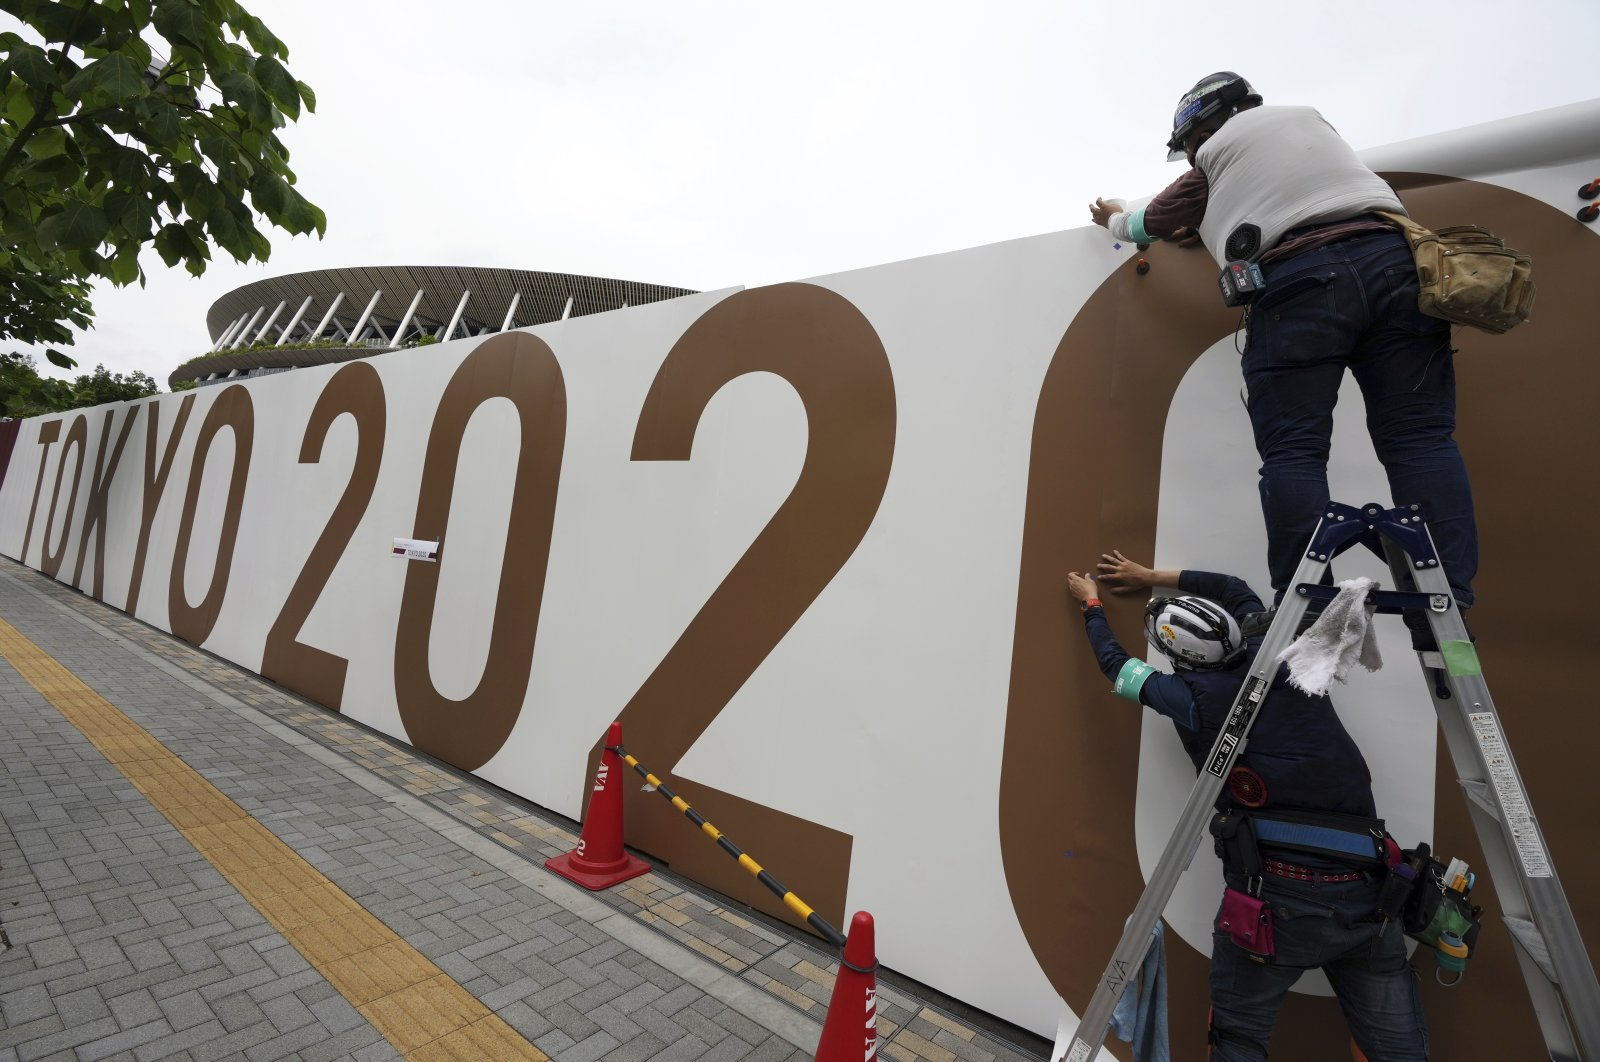 Workers paste the overlay on the wall of the National Stadium, where the opening ceremony and many other events are scheduled for the Tokyo 2020 Olympics, Tokyo, Japan, June 2, 2021. (AP Photo)